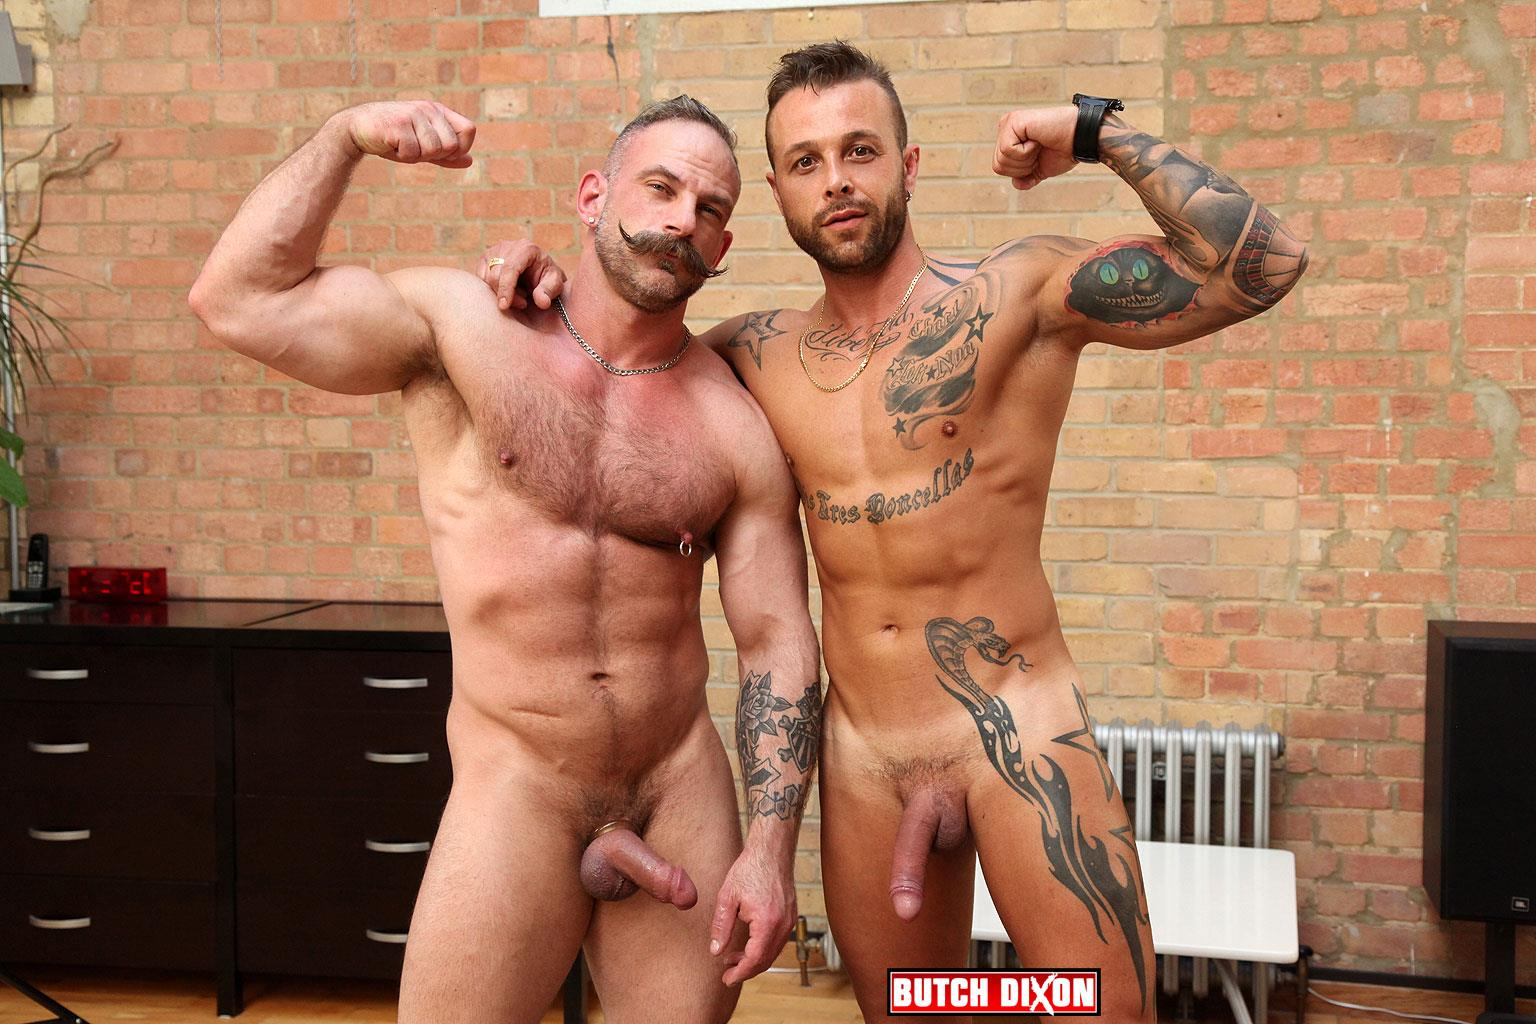 Butch Dixon Samuel Colt and Frank Valencia Hairy Muscle Daddy Getting Fucked By Latino Cock Amateur Gay Porn 10 Happy Fathers Day: Hairy Muscle Daddy Samuel Colt Taking A Big Cock Up The Ass